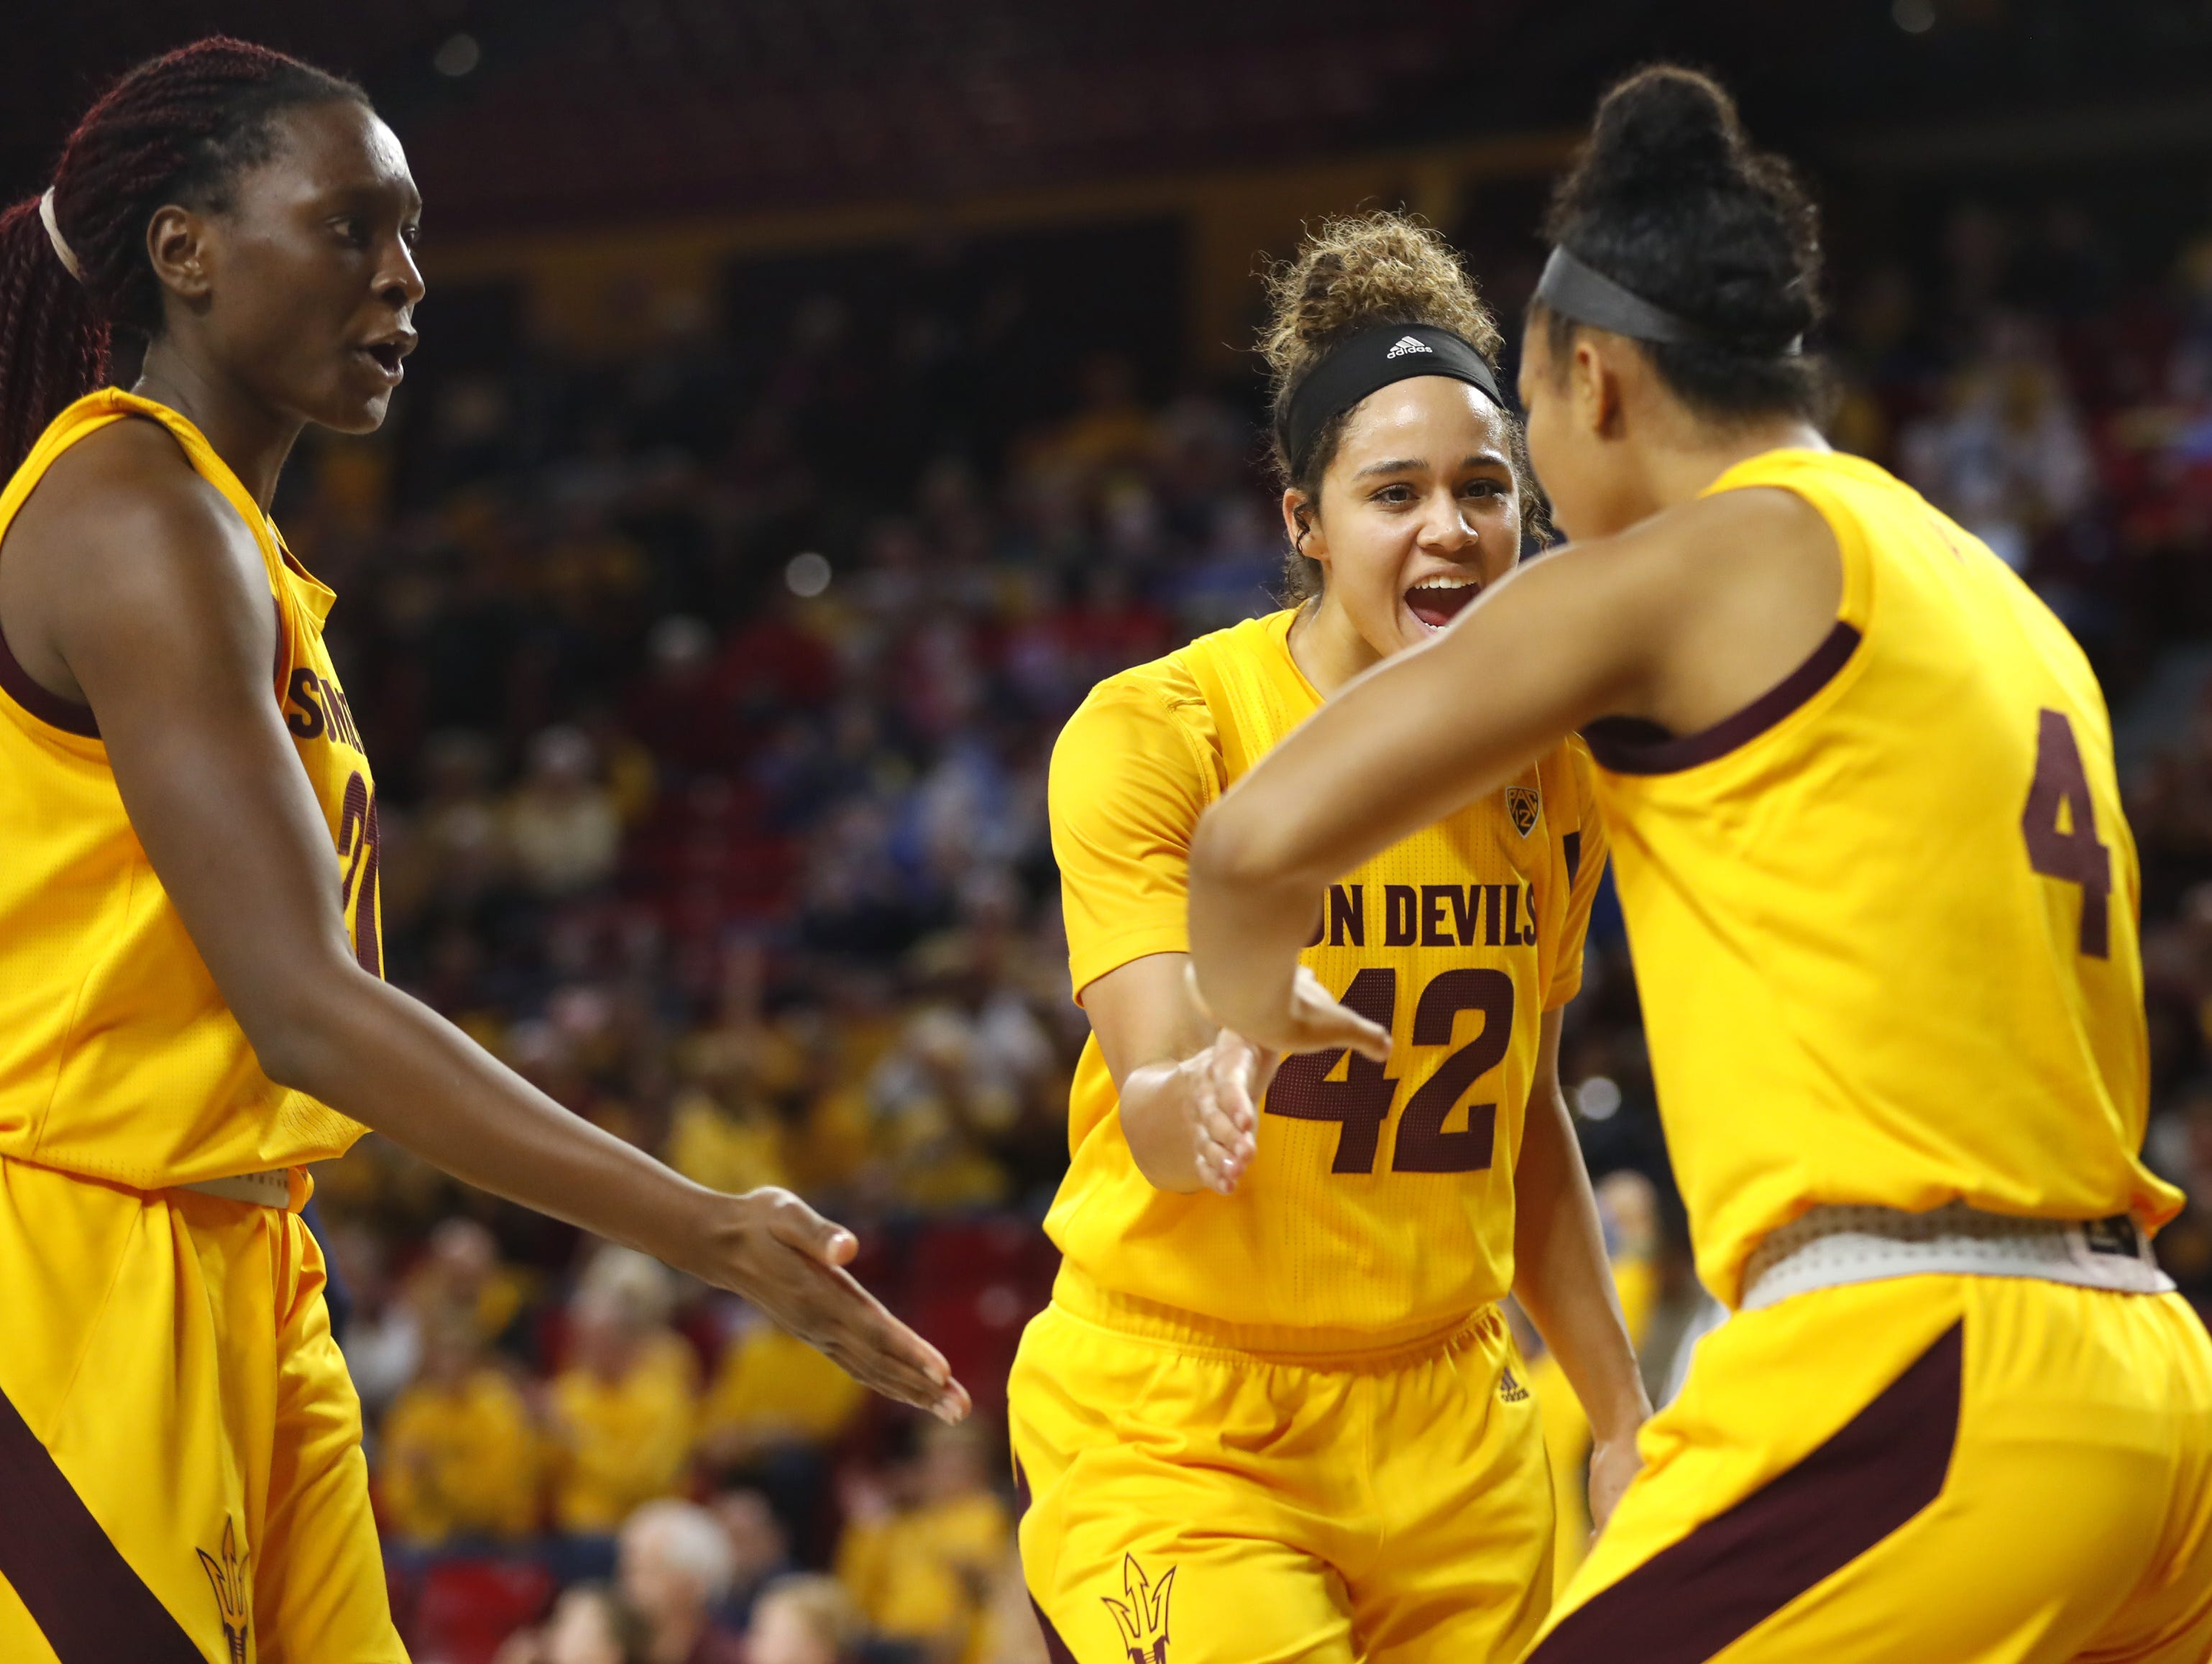 ASU's Sophia Elenga (21) and Kianna Ibis (42) celebrate with Kiara Russell (4) after Russel scored and drew a foul against Arizona during the second half at Wells Fargo Arena in Tempe, Ariz. on February 1, 2019.